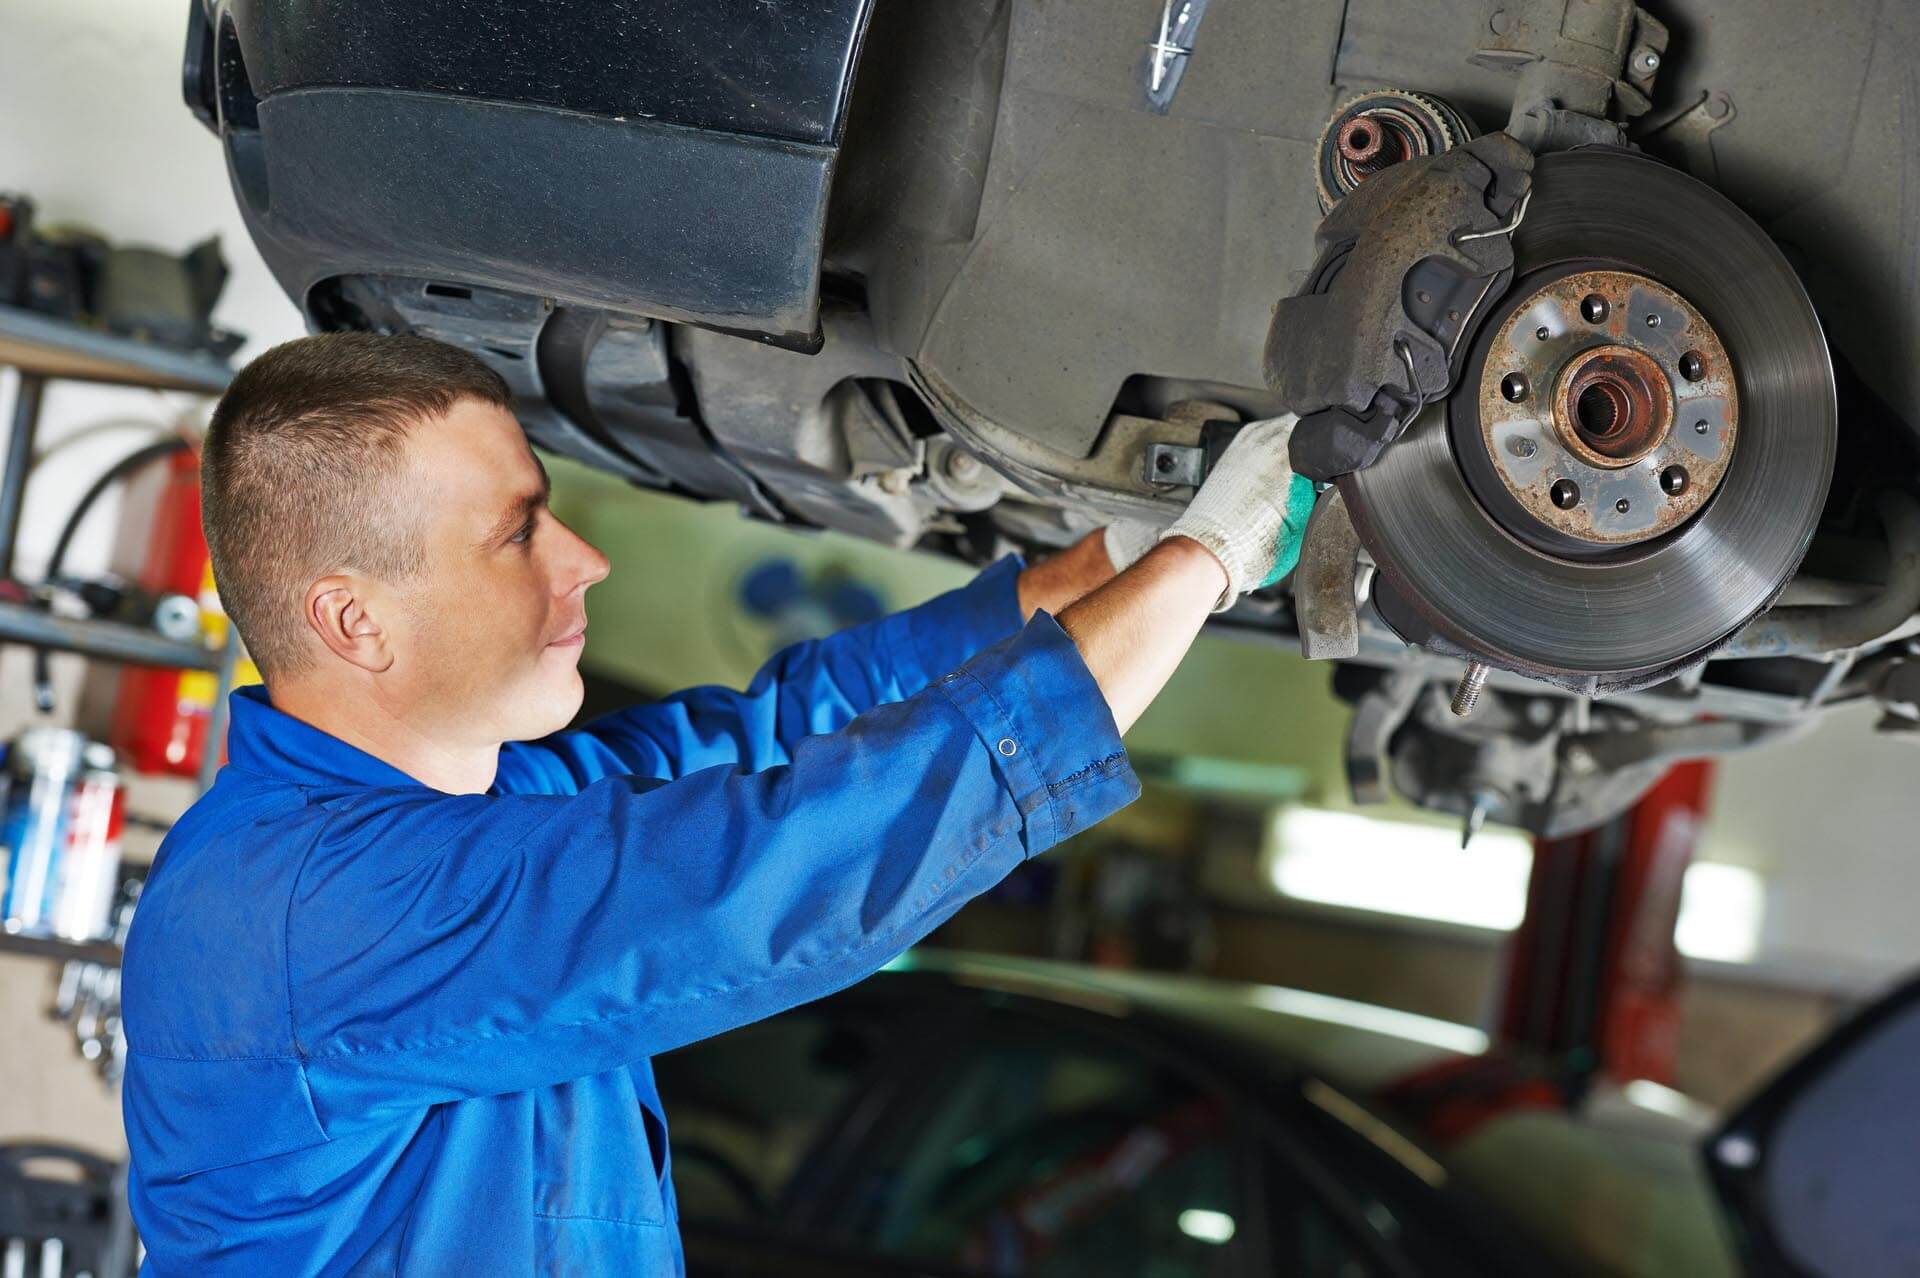 Brake Pads And Discs In Leeds Who Can Fix My Car Auto Repair Mechanic Engine Brakes Service